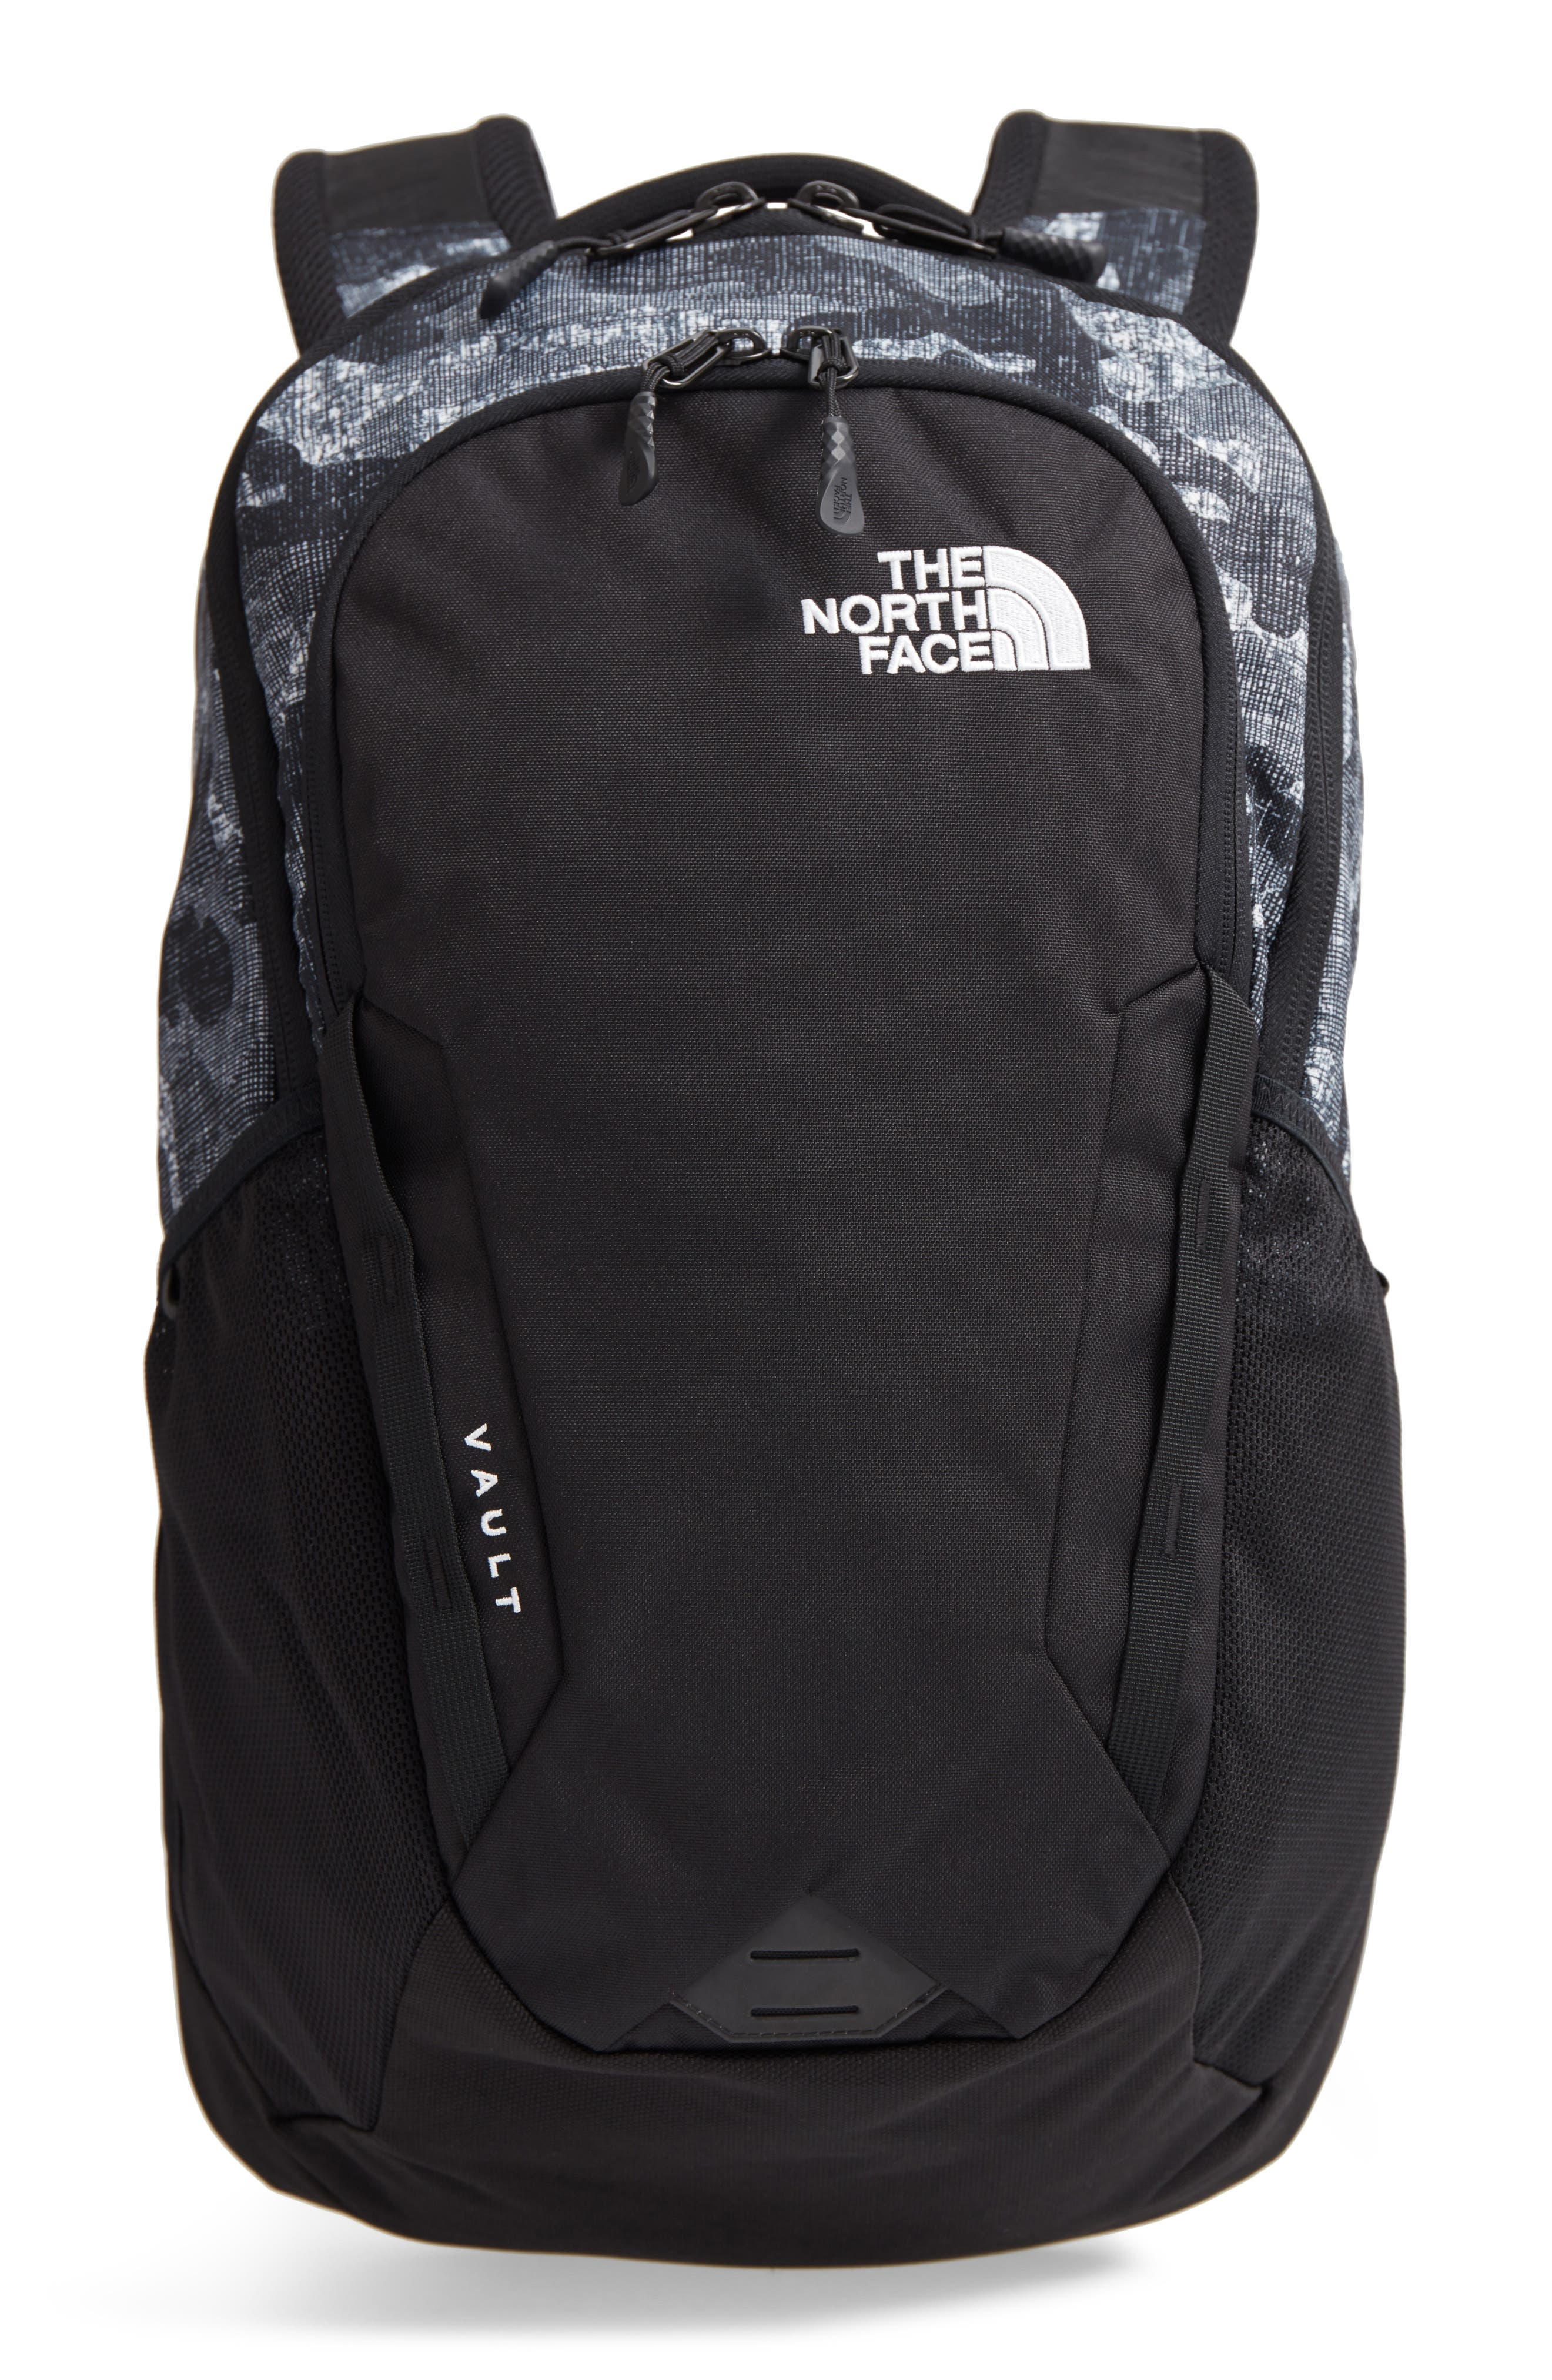 Vault Backpack,                             Main thumbnail 1, color,                             Tnf Black Textured Camo Print